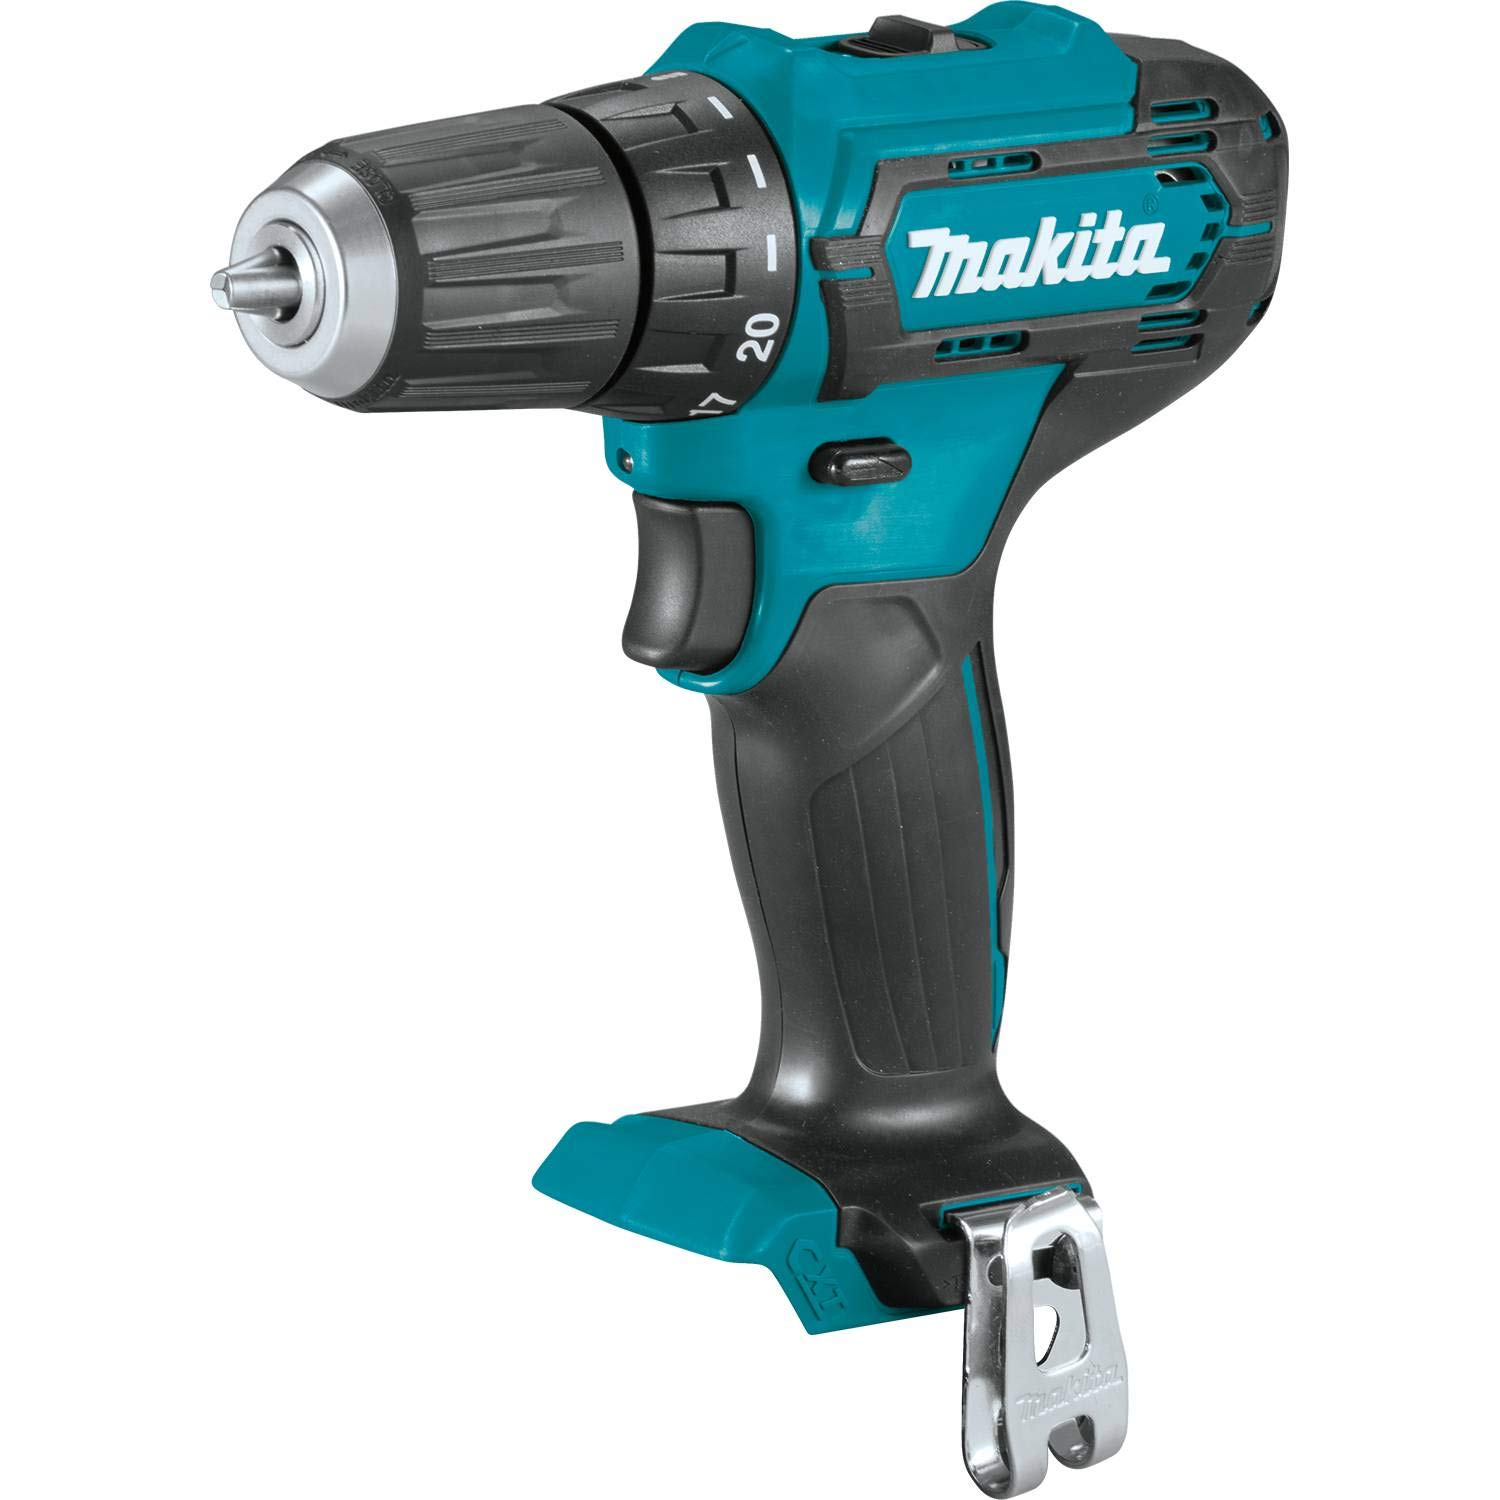 Makita FD09Z 12V max CXT Lithium-Ion Cordless 3/8'' Driver-Drill, Tool Only